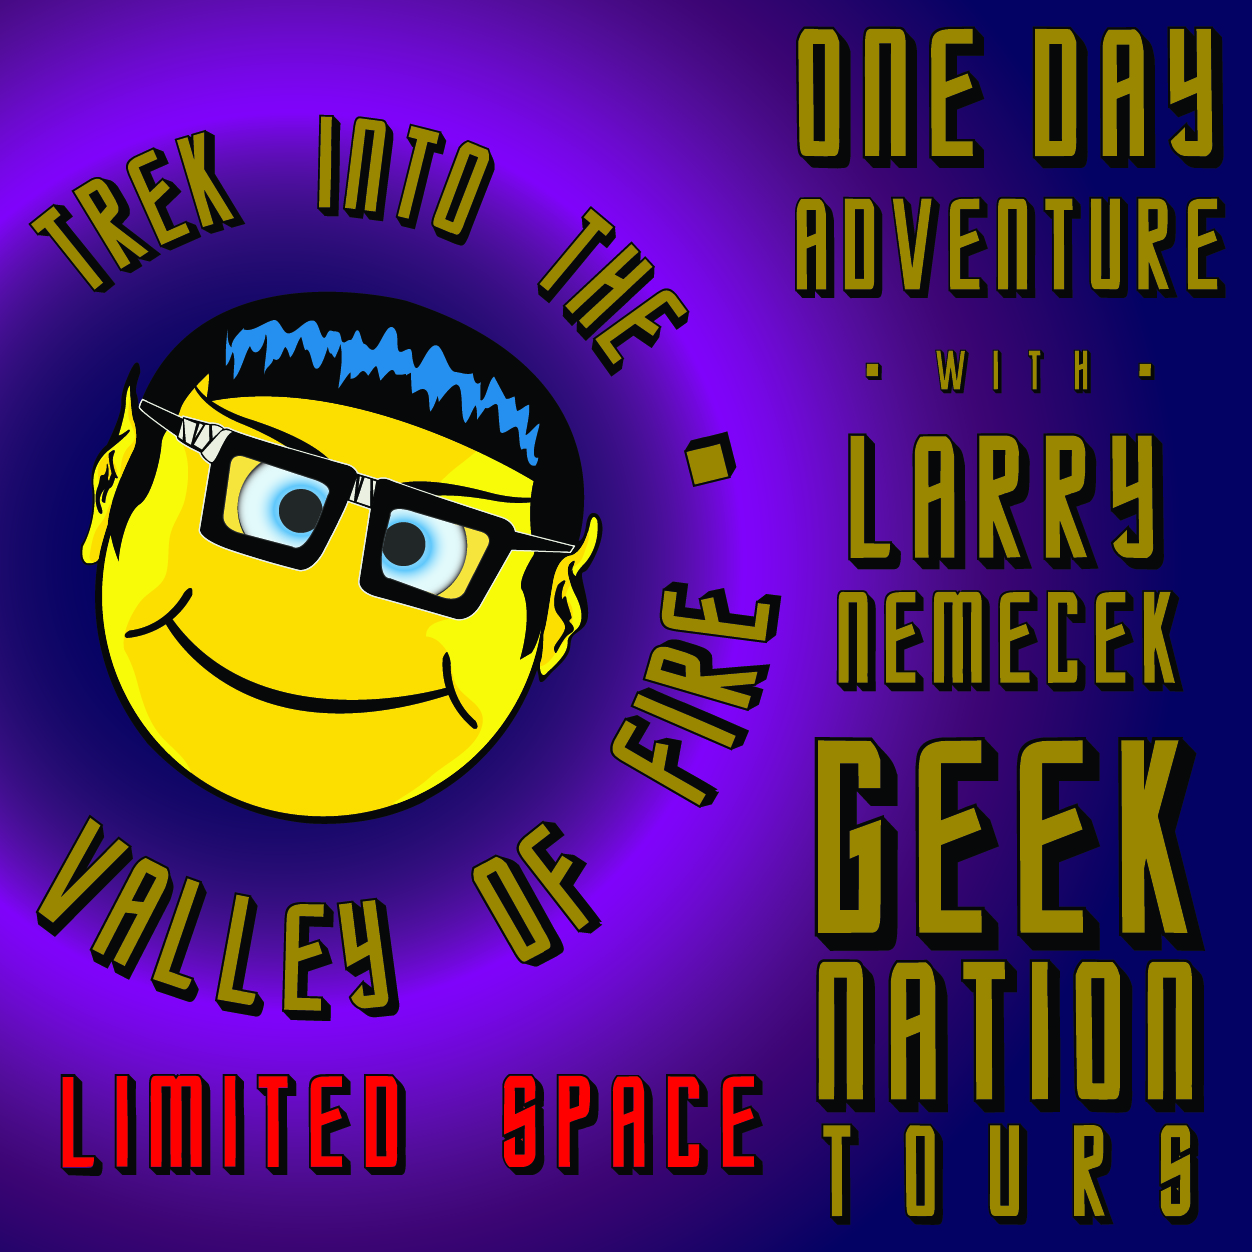 Trek into the Valley of Fire - One Day Adventure 2020 - with Larry Nemecek